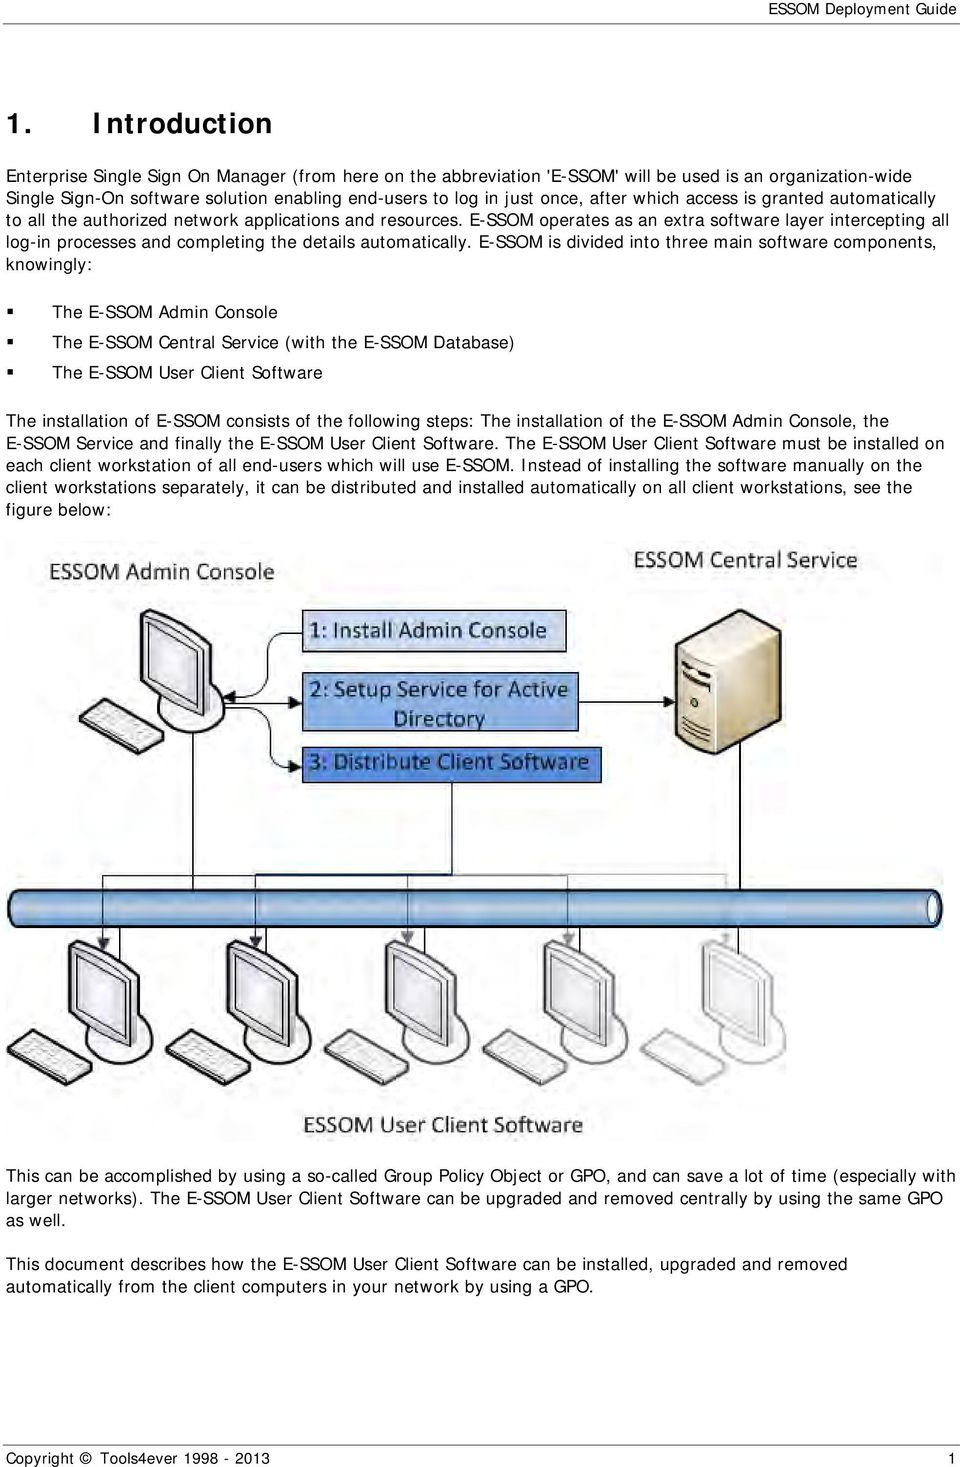 E-SSOM operates as an extra software layer intercepting all log-in processes and completing the details automatically.